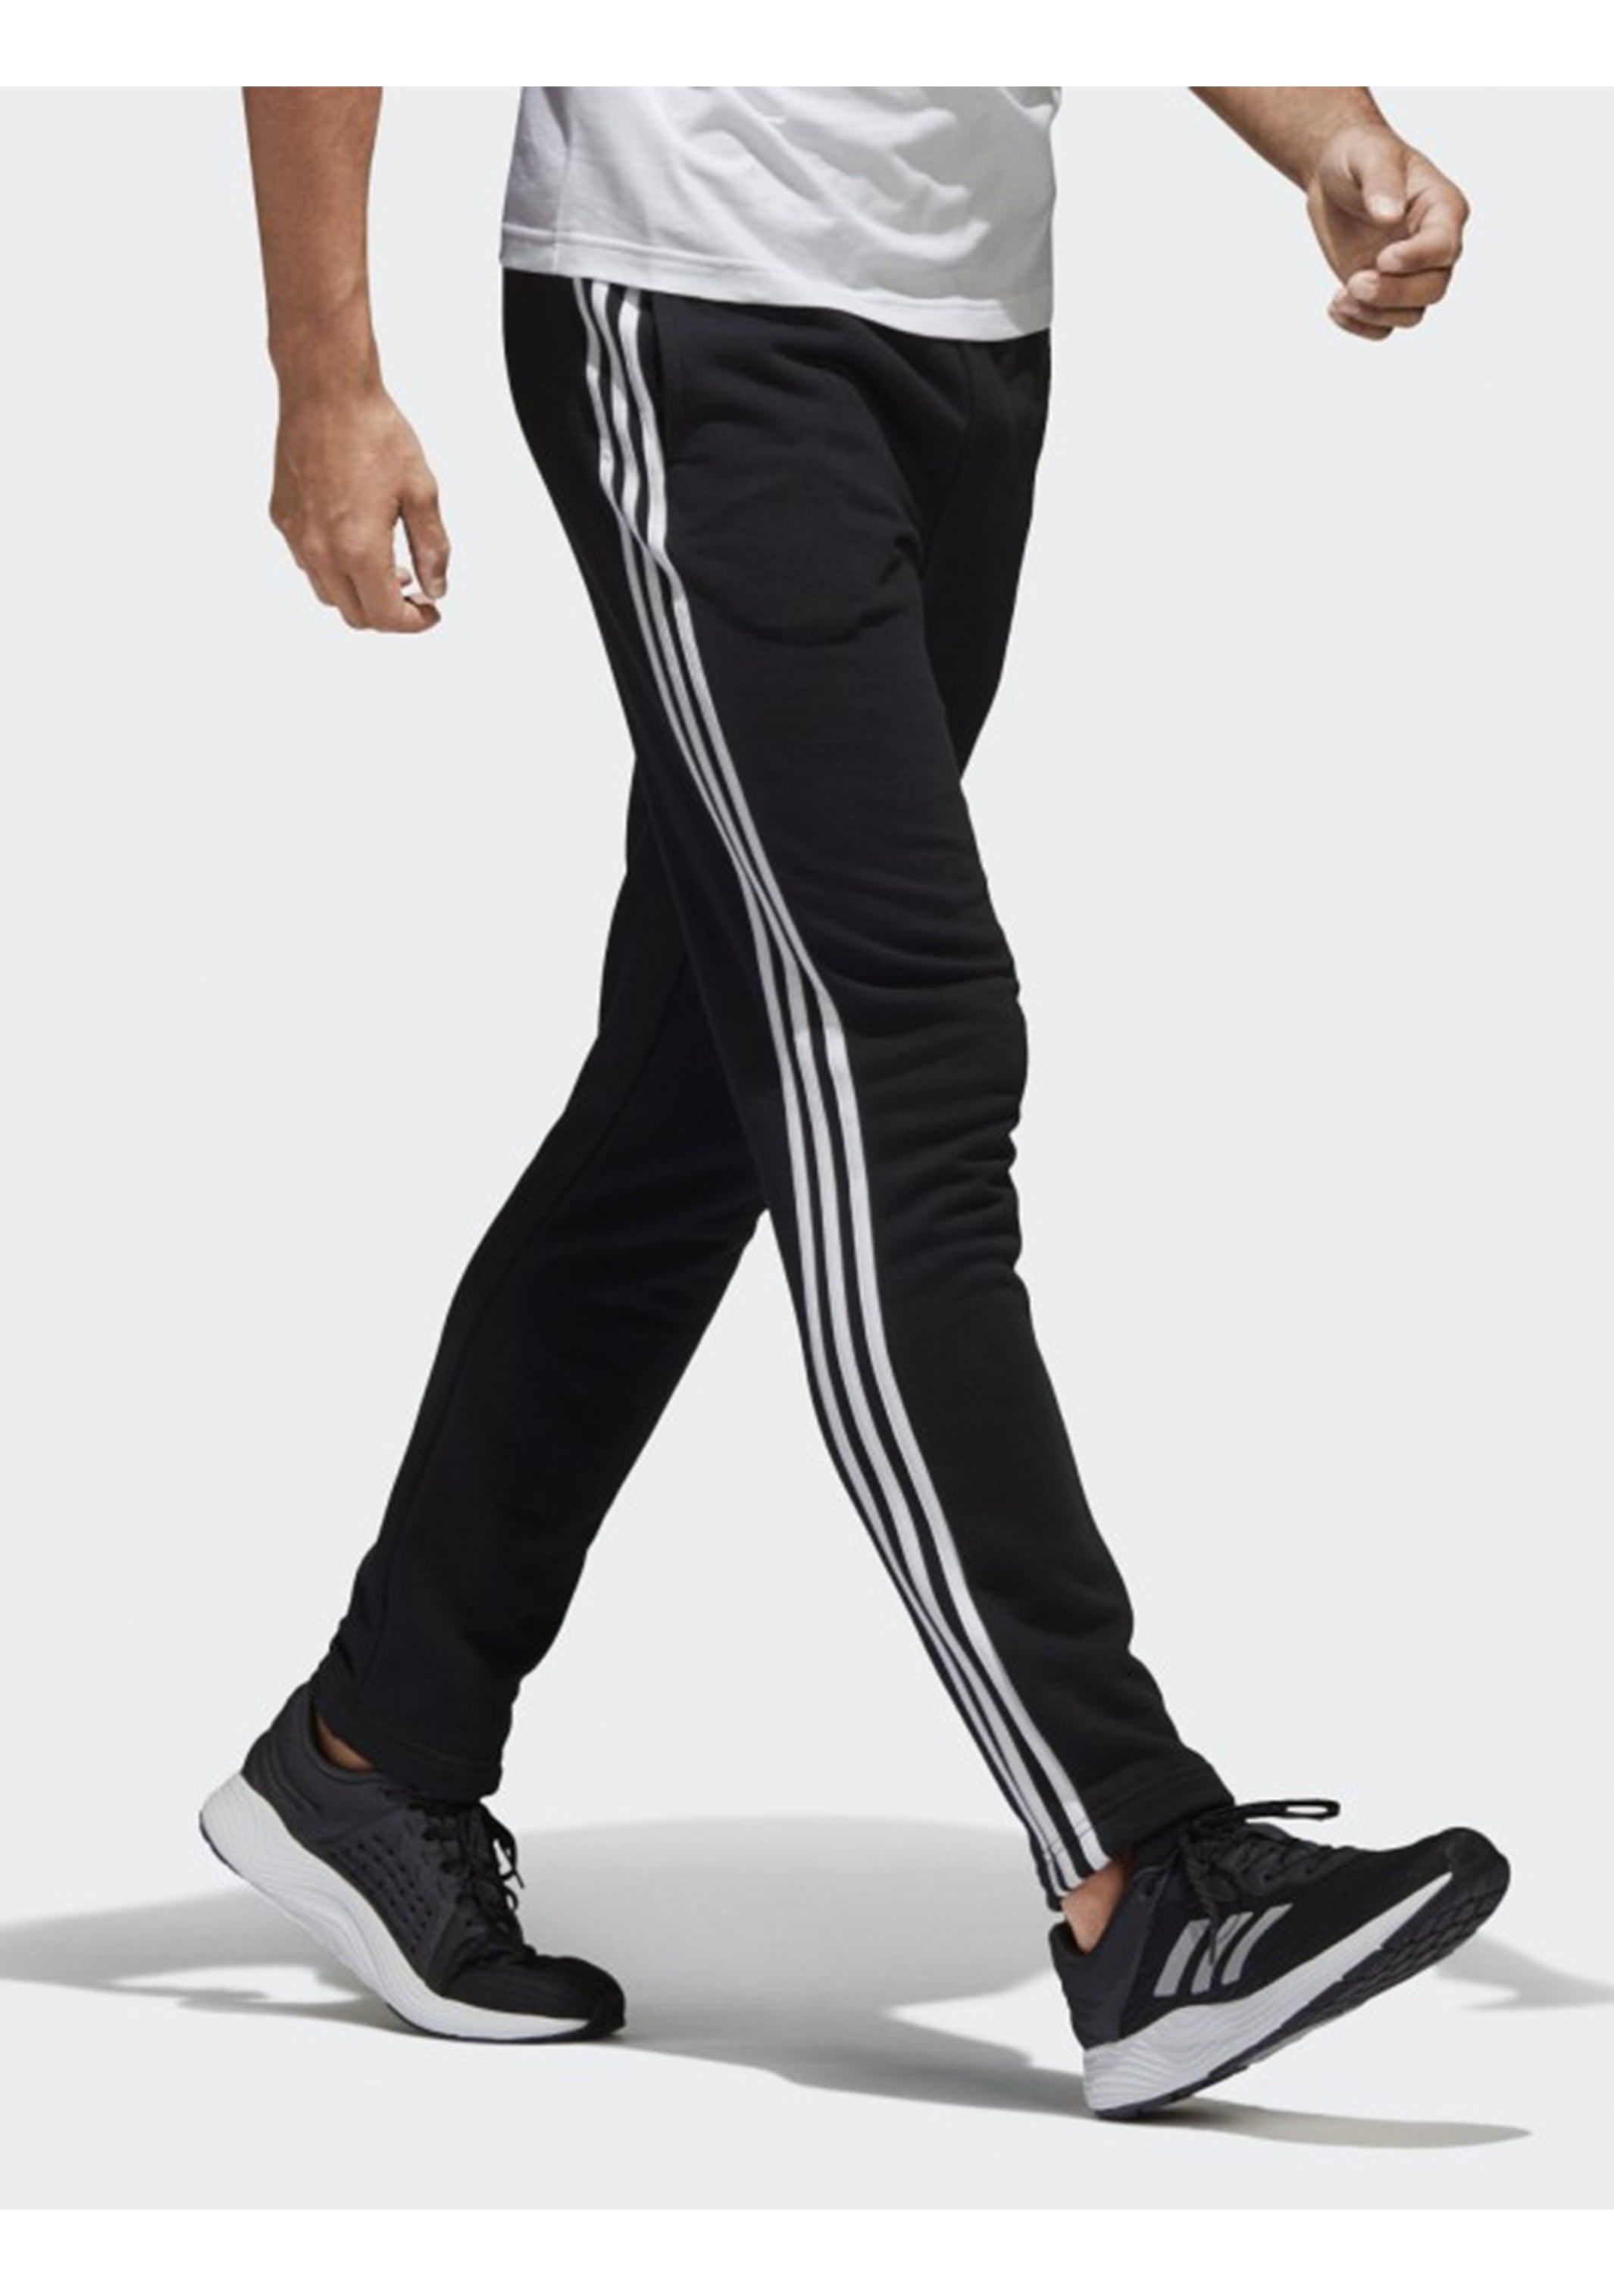 adidas soccer pants clearance, Men's pants adidas french